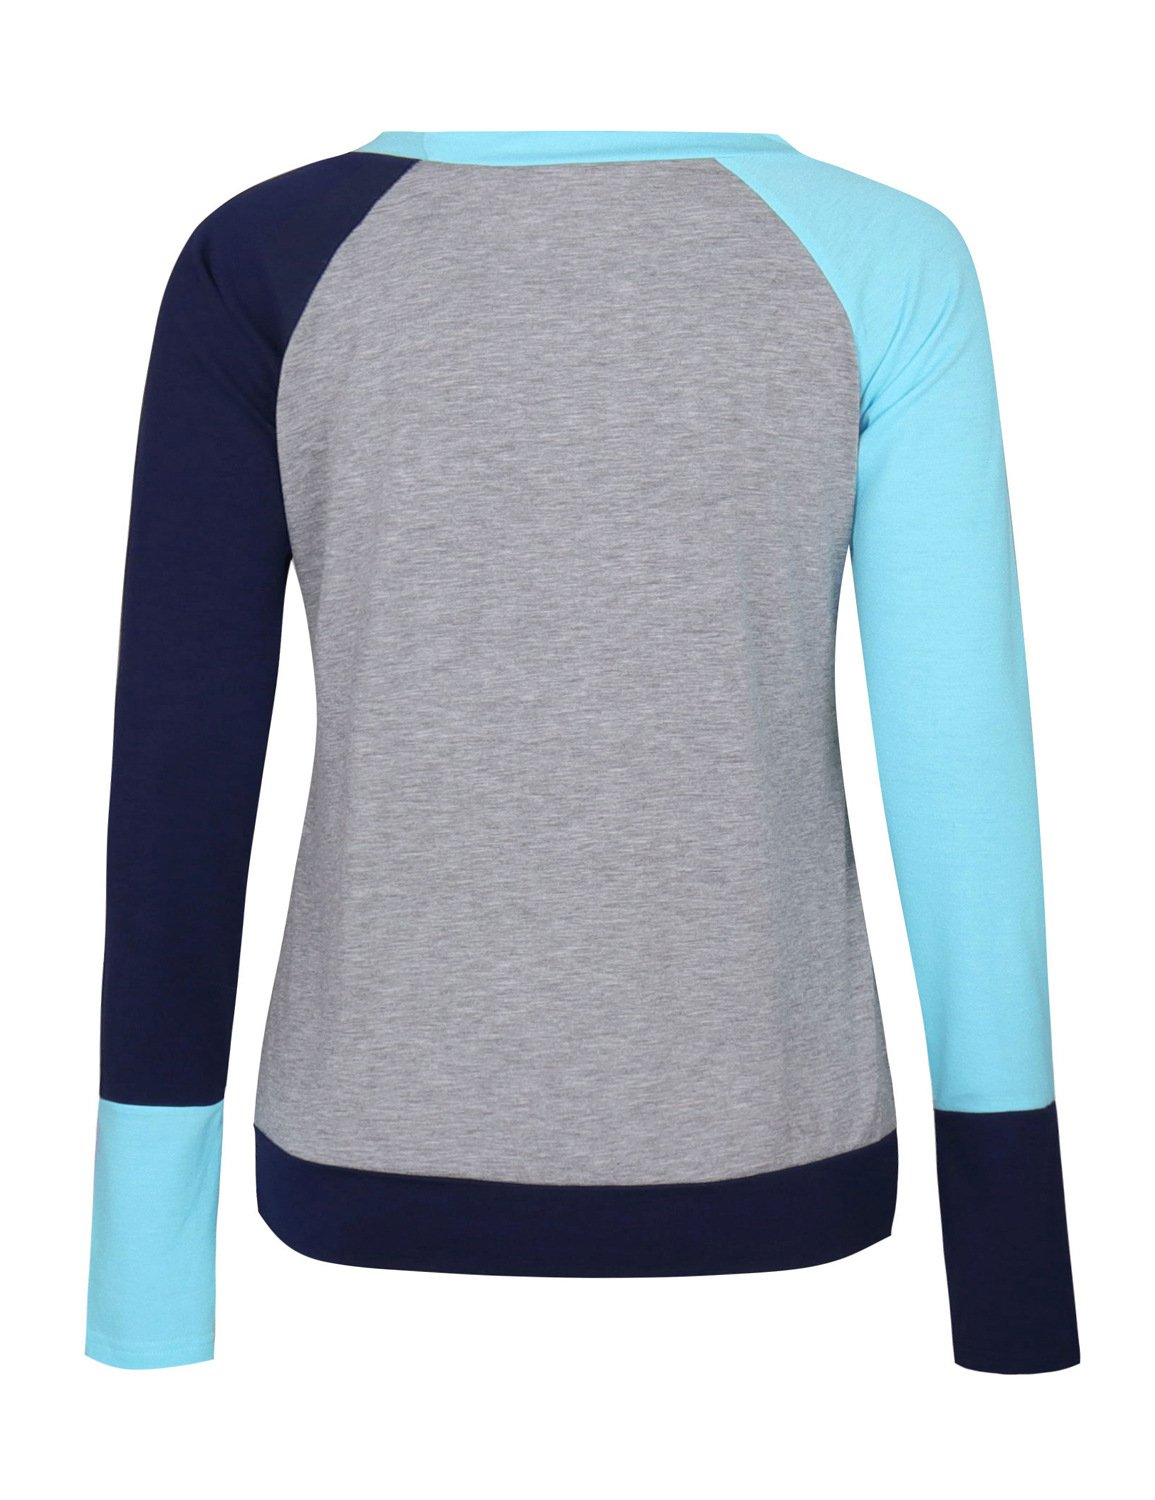 Naier Women T Shirt Top Long Sleeve Color Splicing For Leggings Jeans (L, Light Blue) by Naier (Image #2)